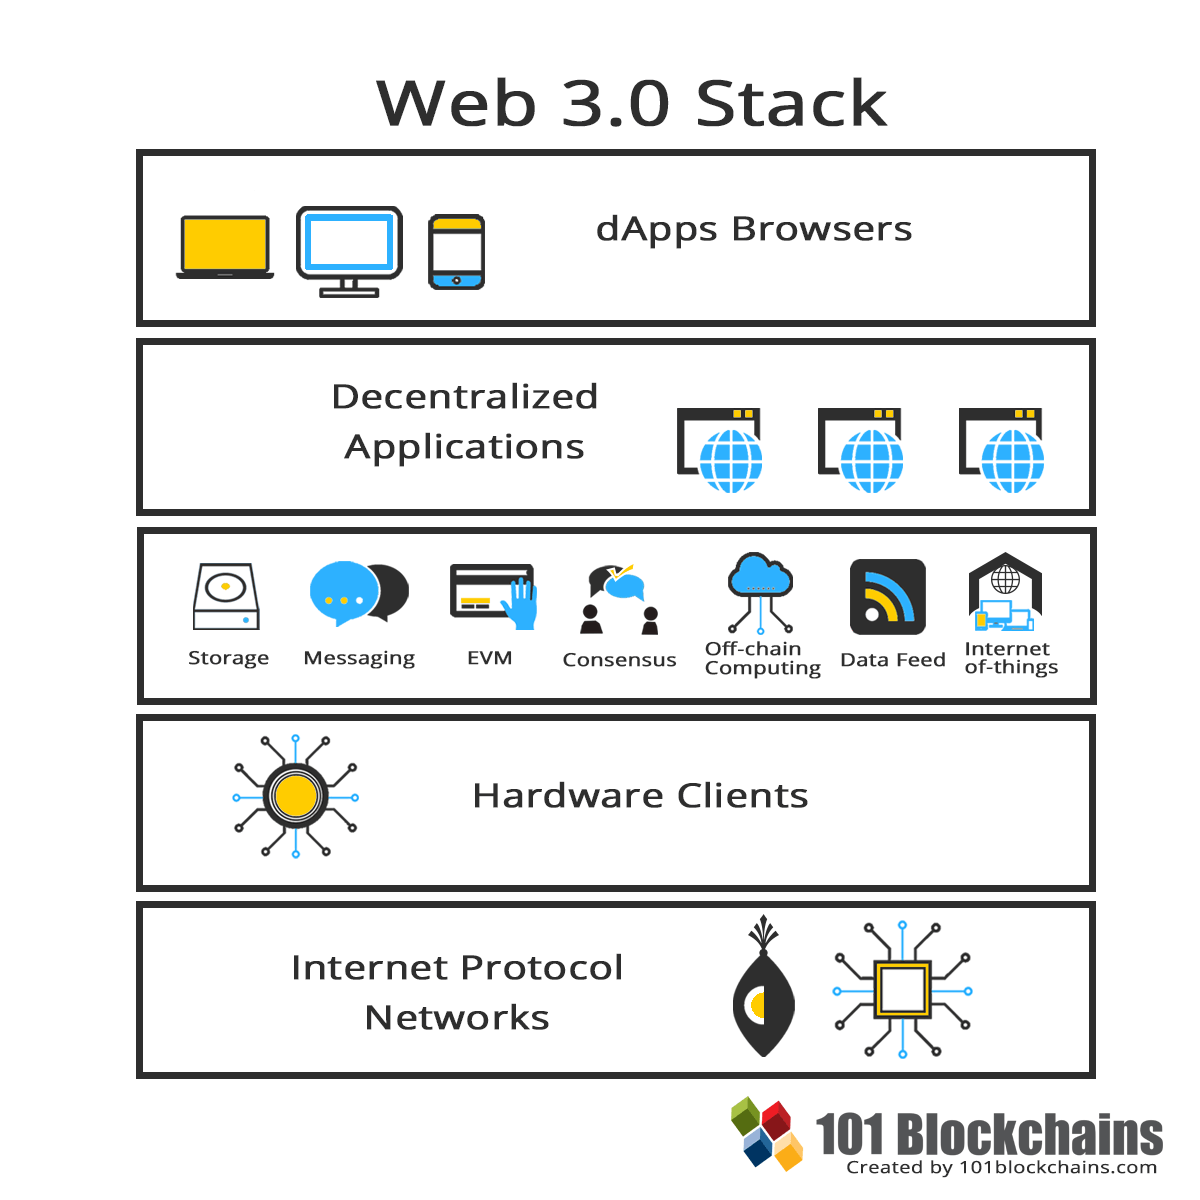 Web 3.0 Stack